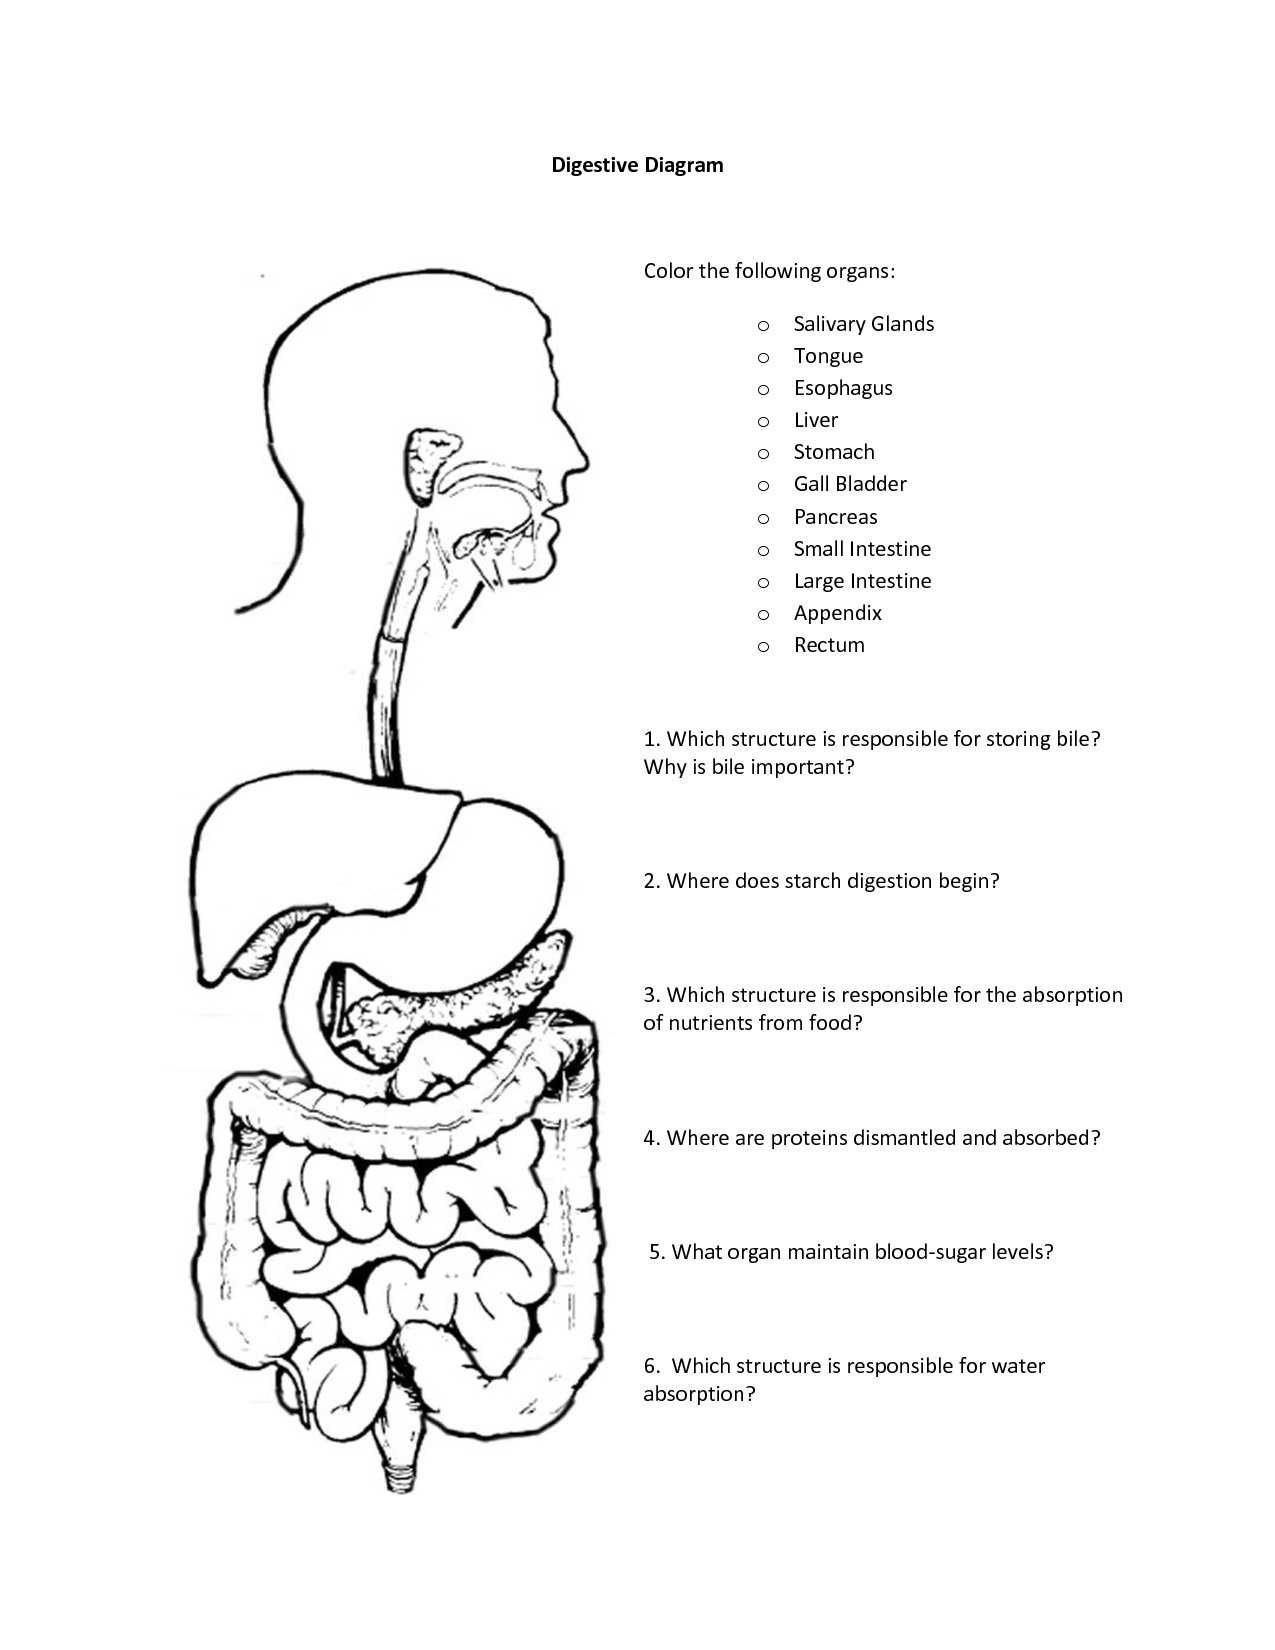 coloring sheet digestive system coloring page digestive system coloring pages food ideas digestive coloring system coloring page sheet digestive